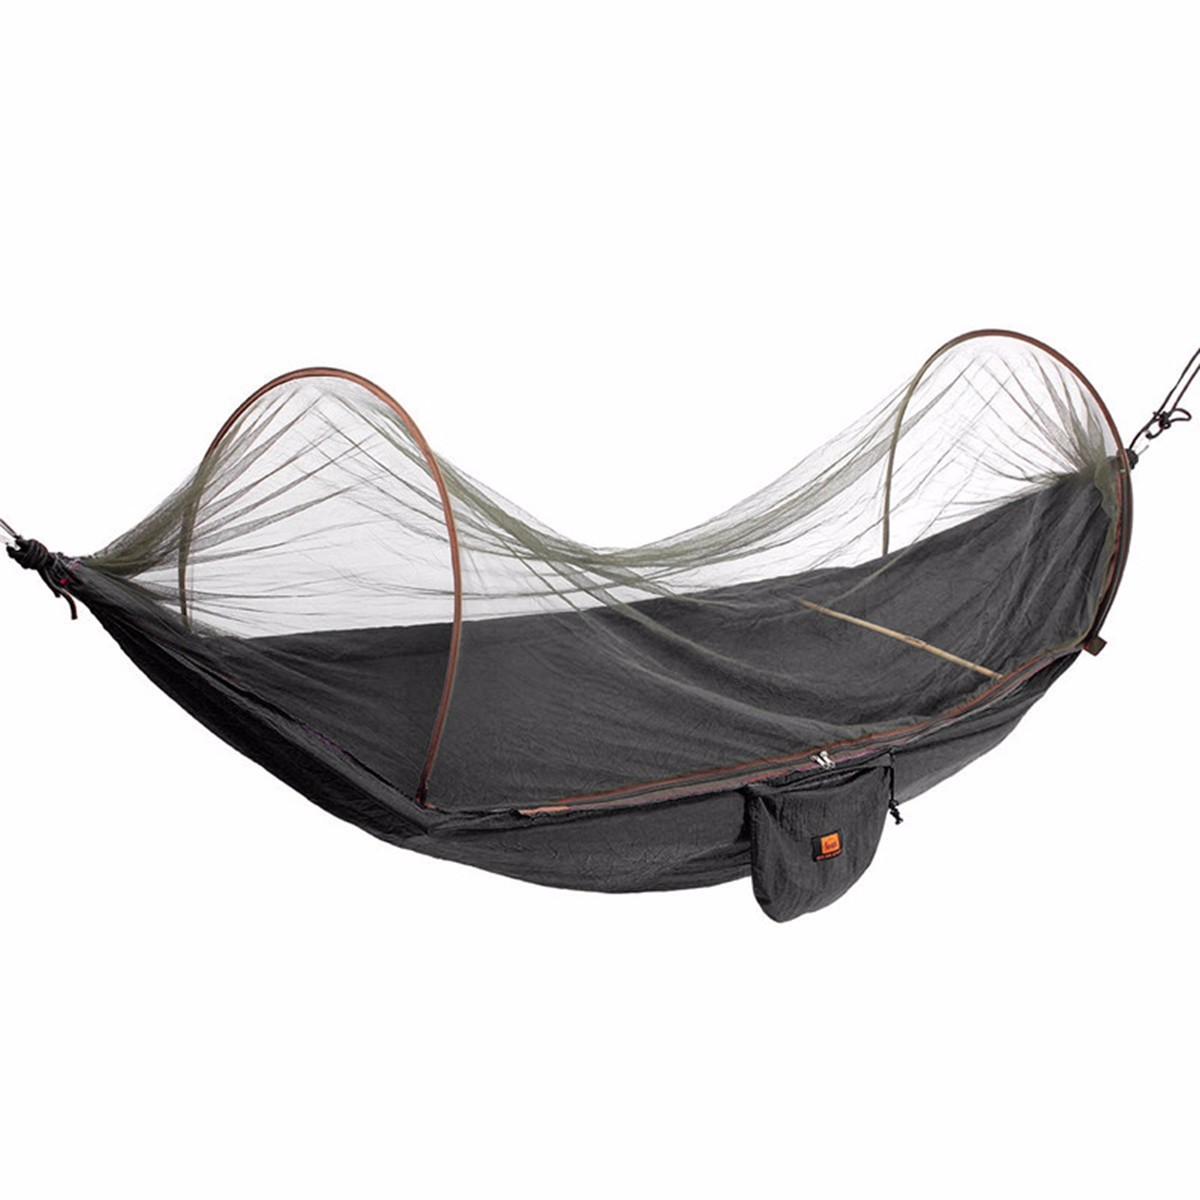 Outdoor portable camping parachute hammock hanging swing for Net hammock bed